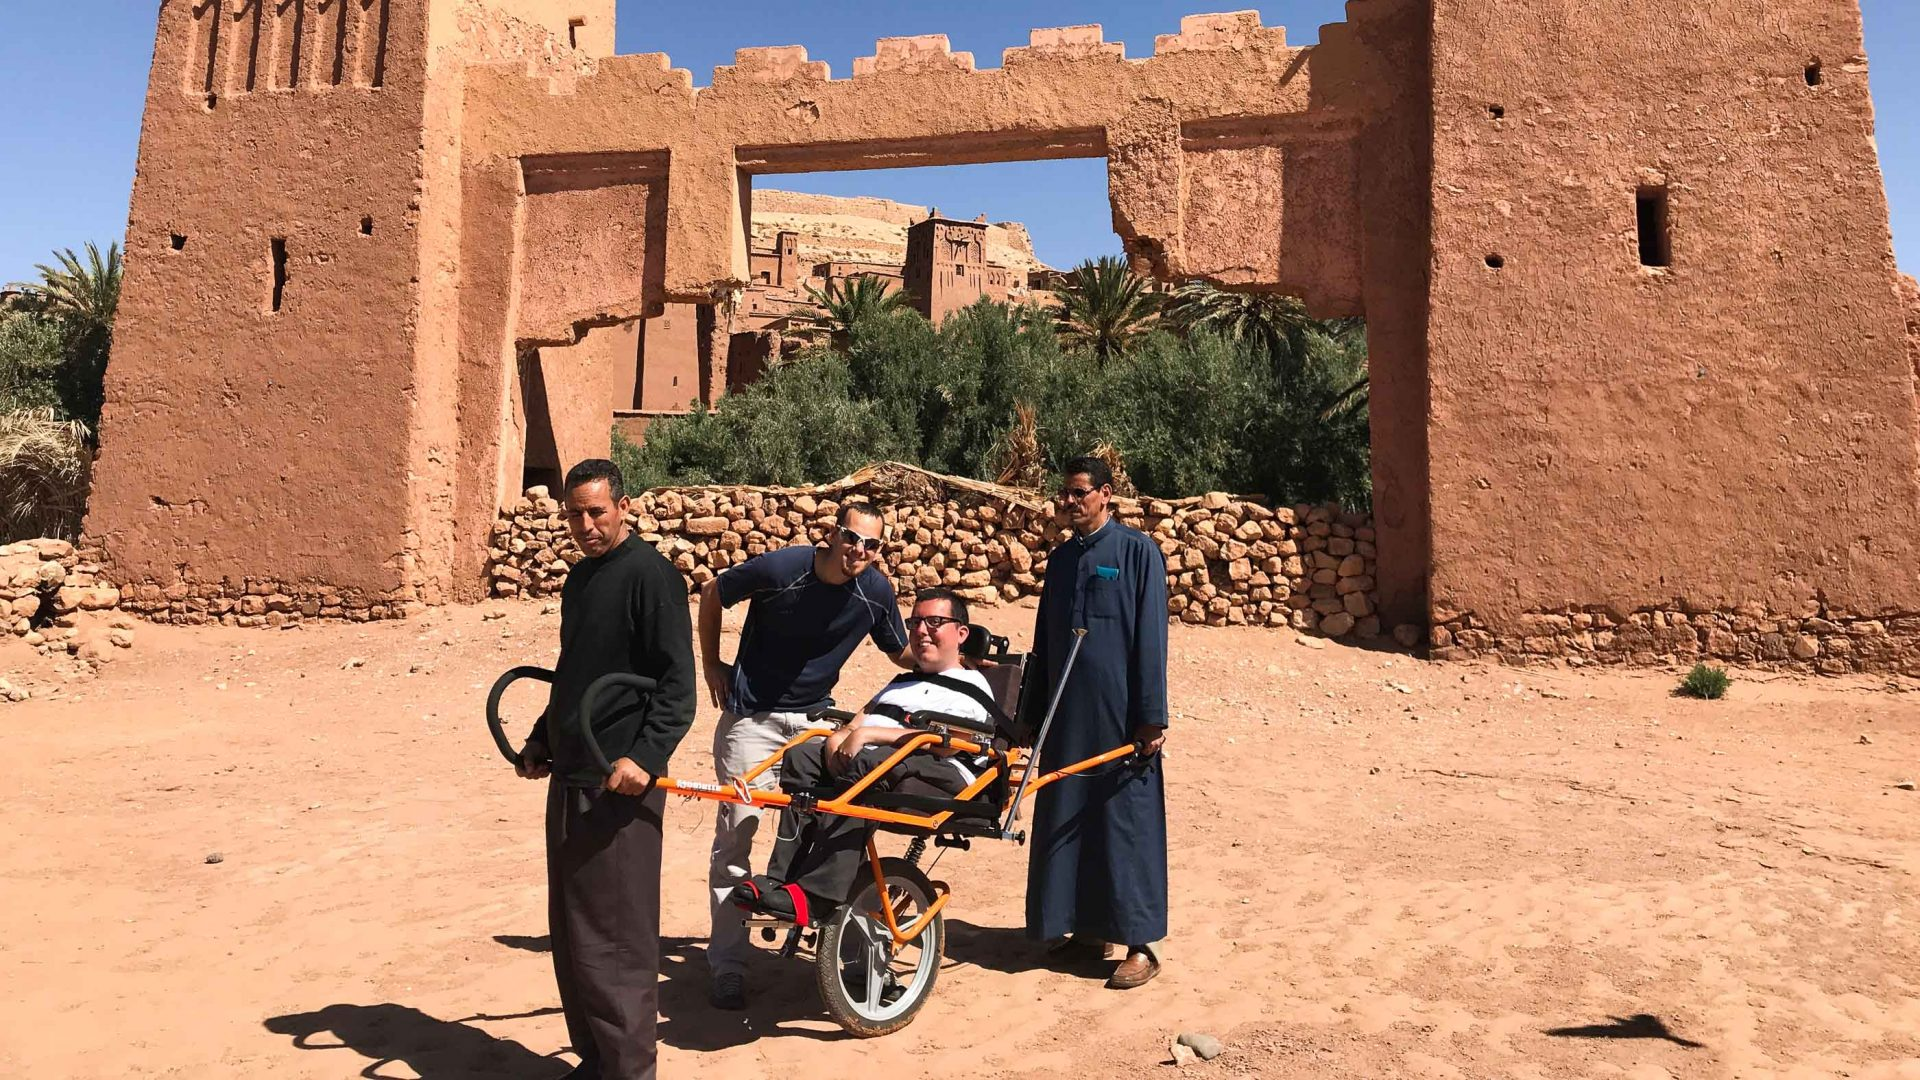 Cory Lee traveling in Morocco.